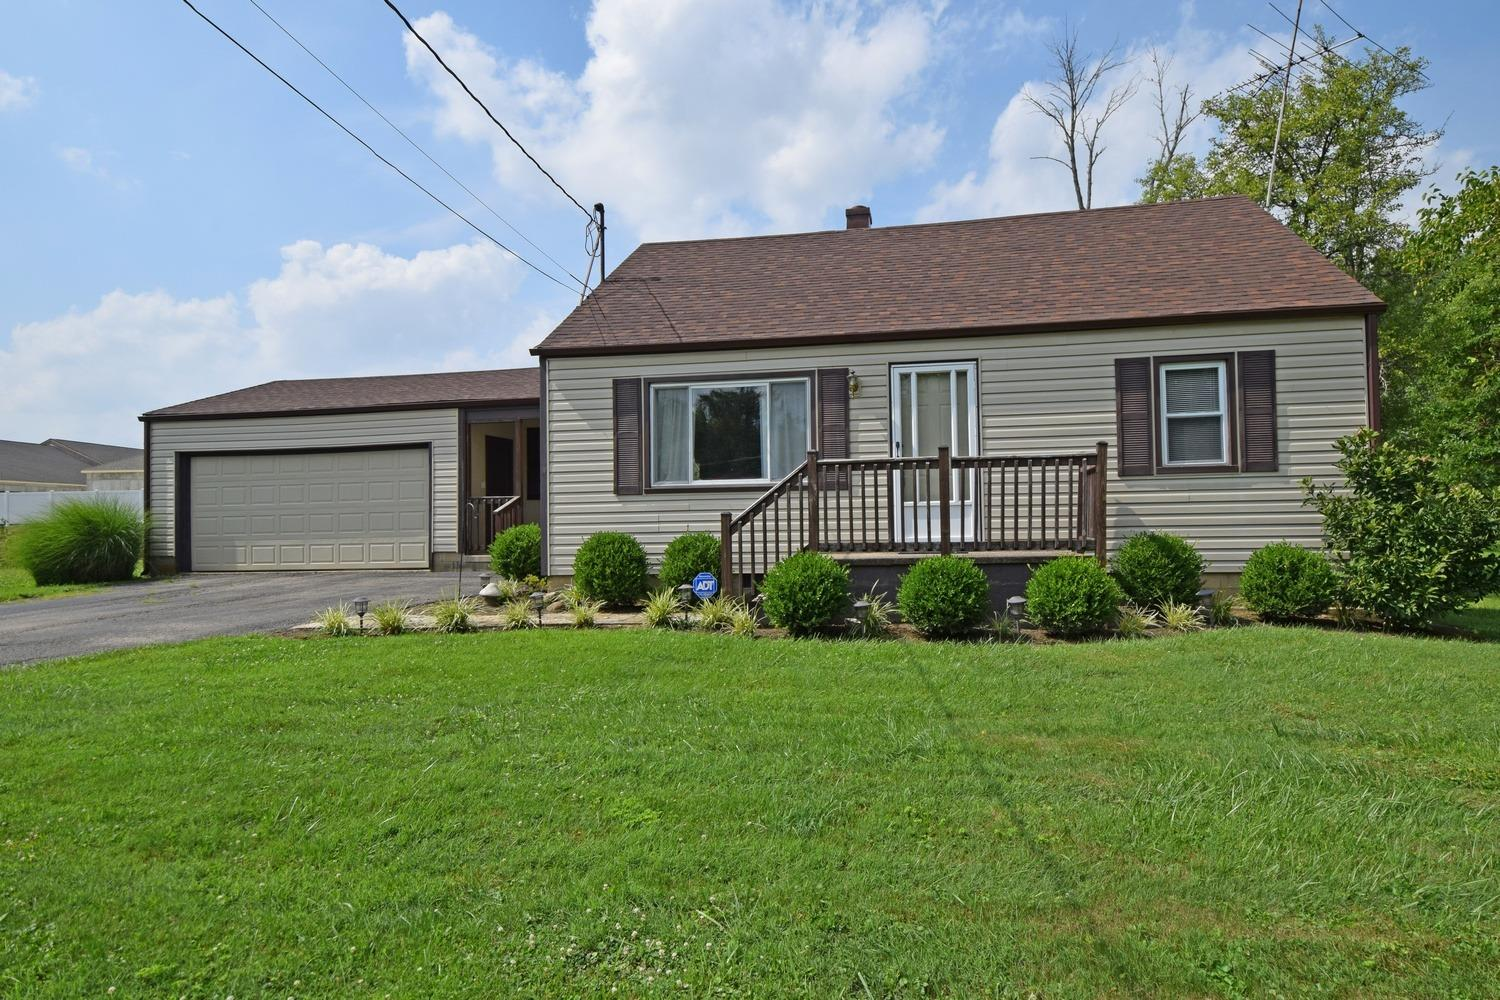 2504 Old Mill Rd, Deerfield Twp , OH 45039 Listing Details